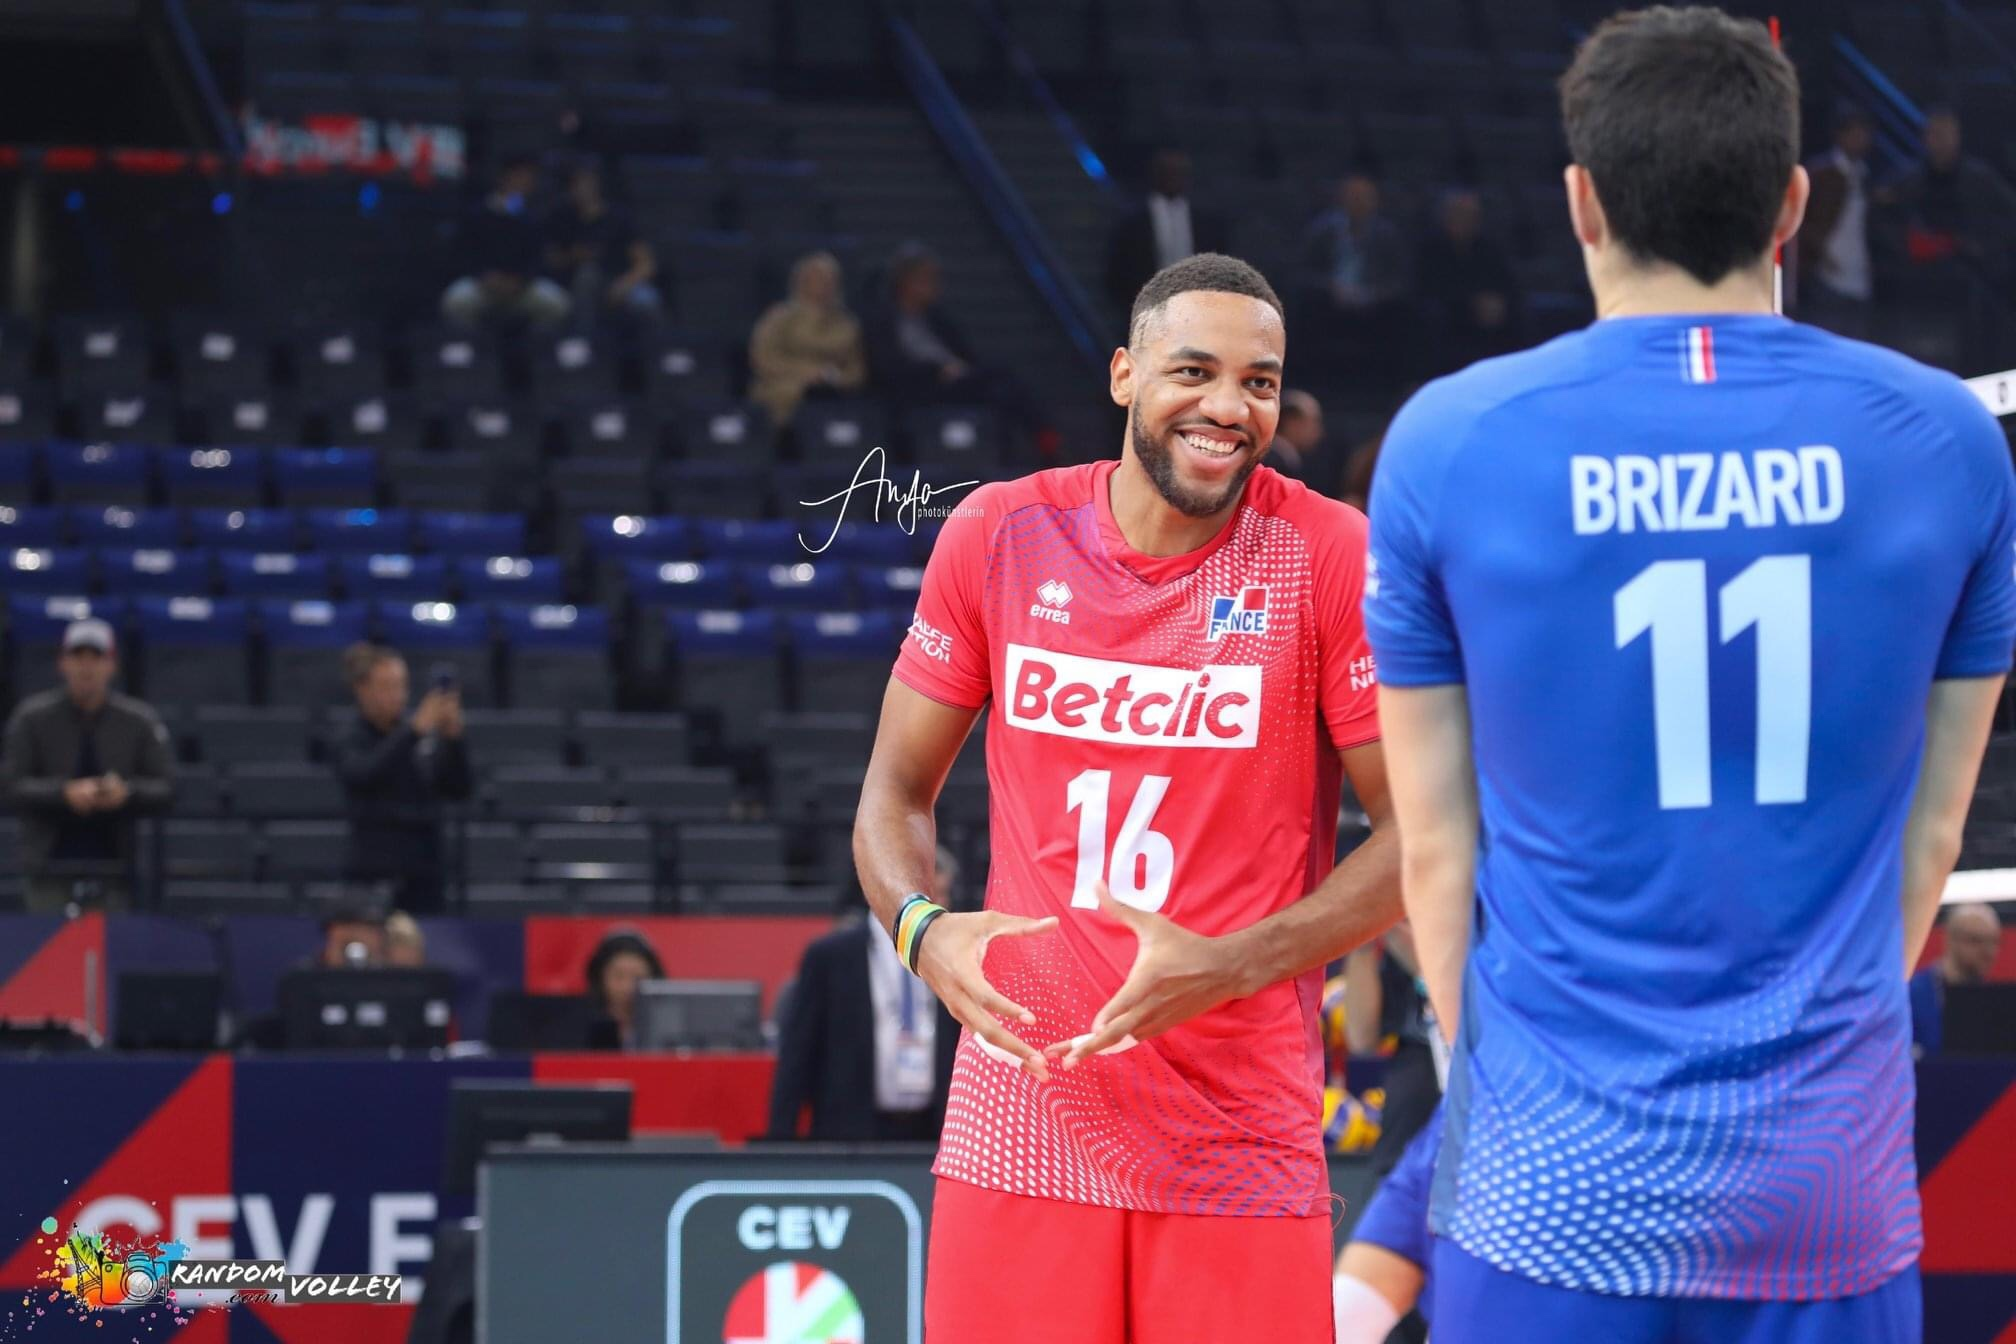 Transfers France: Bultor to Tourcoing, Parkinson to Toulouse